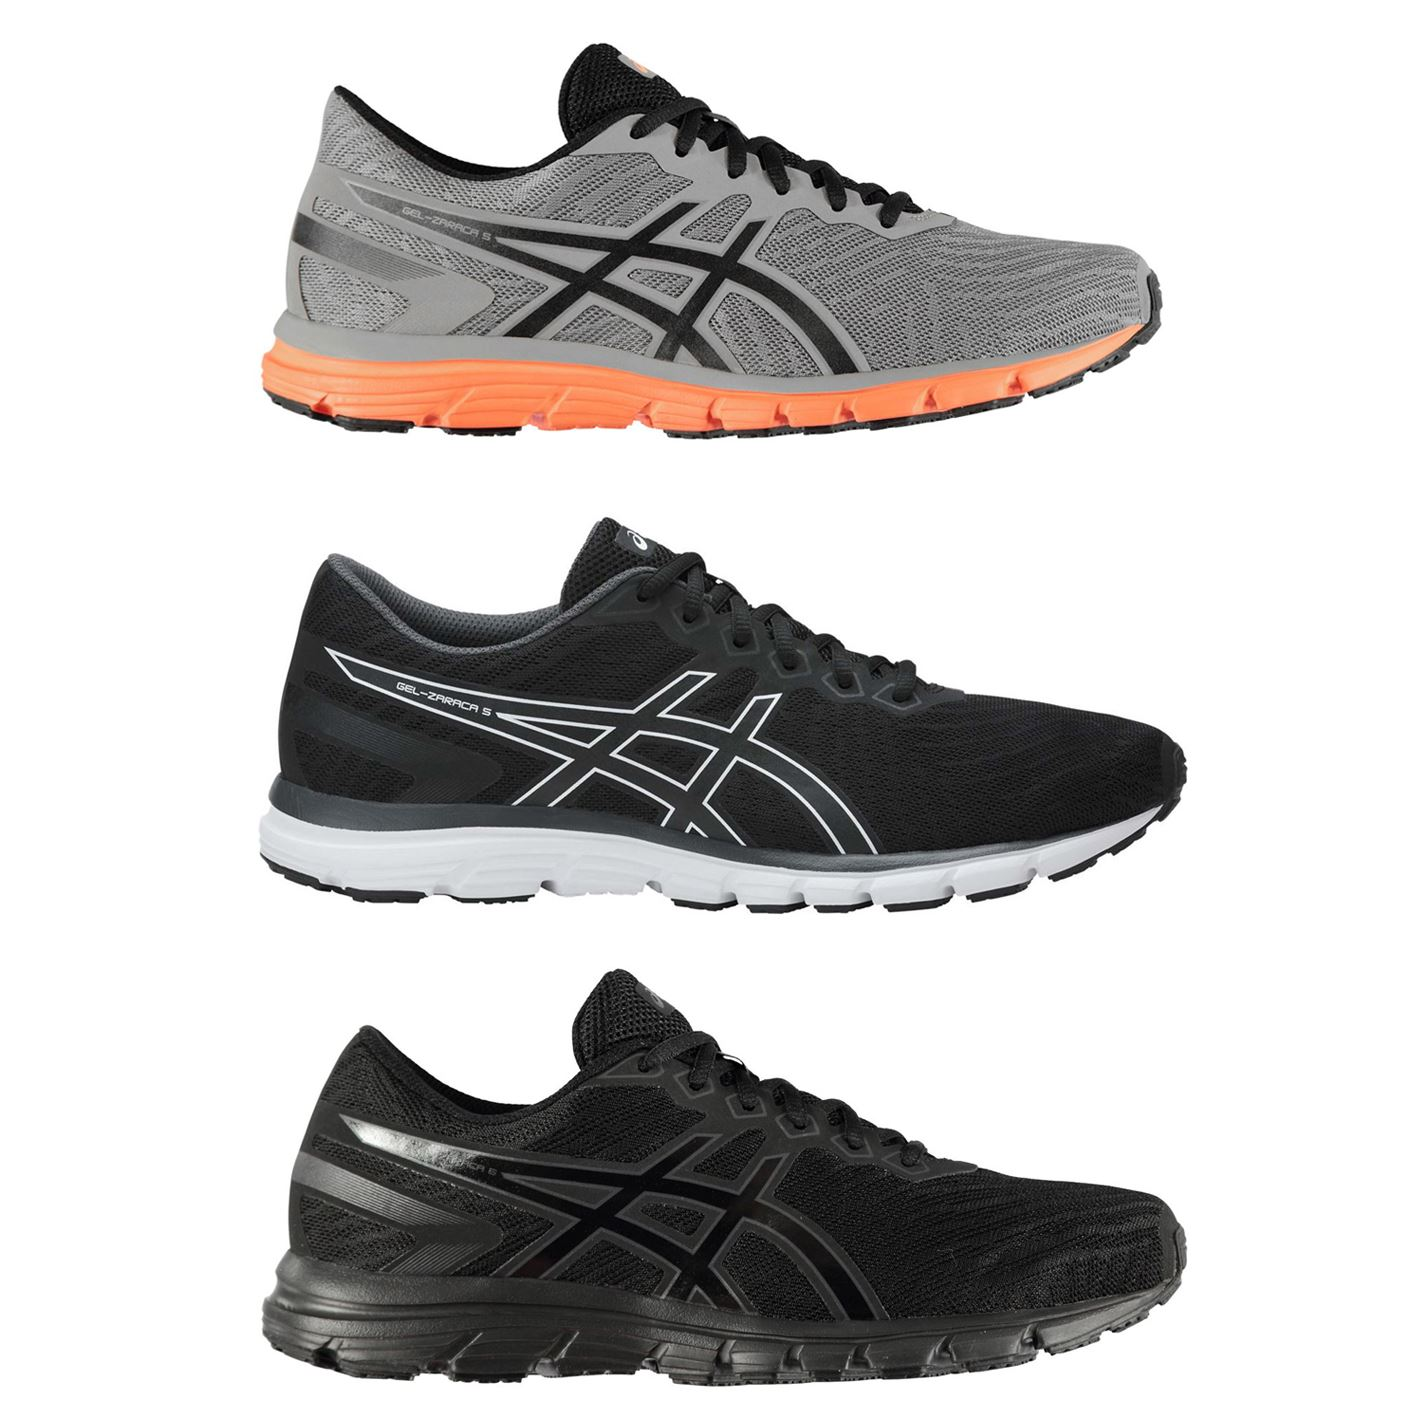 Details about Asics Gel Zaraca 5 Mens Running Shoes Trainers Footwear Sneakers